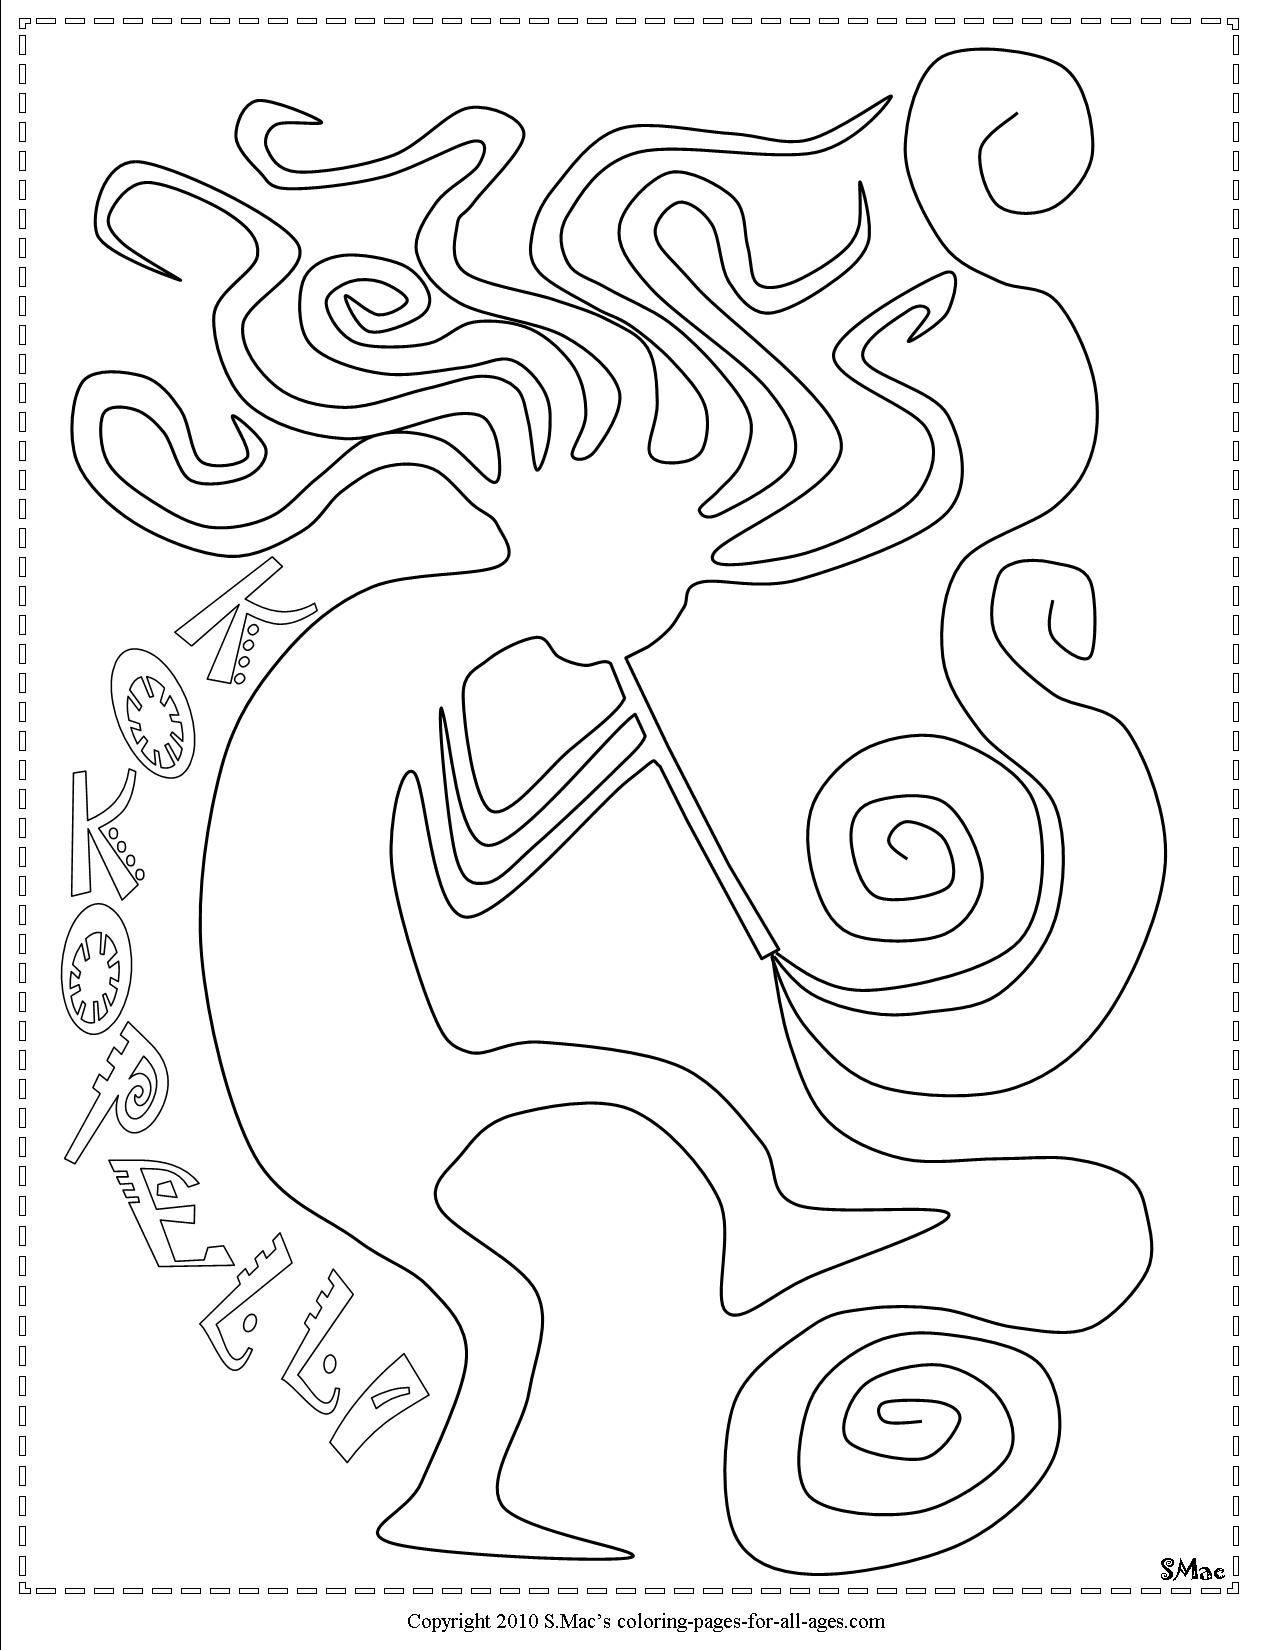 The Best Free Southwest Coloring Page Images Download